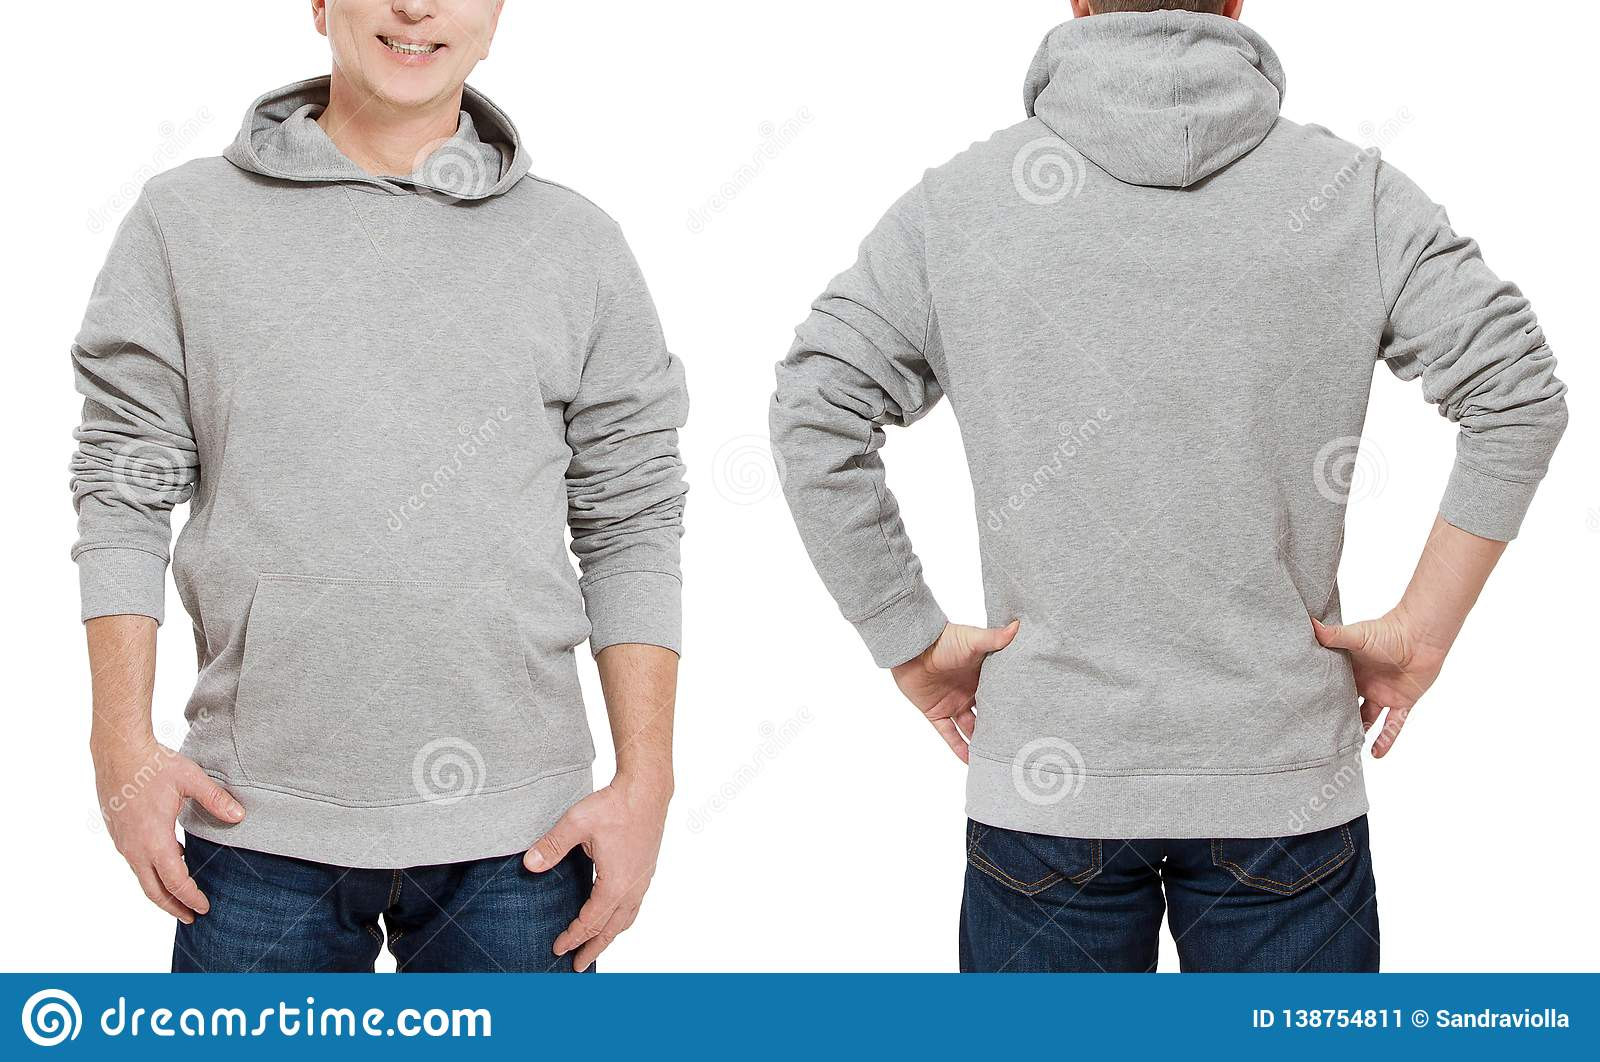 Middle age man in gray sweatshirt template isolated. Male sweatshirts set with mockup, copy space. Sweat shirt design front rear